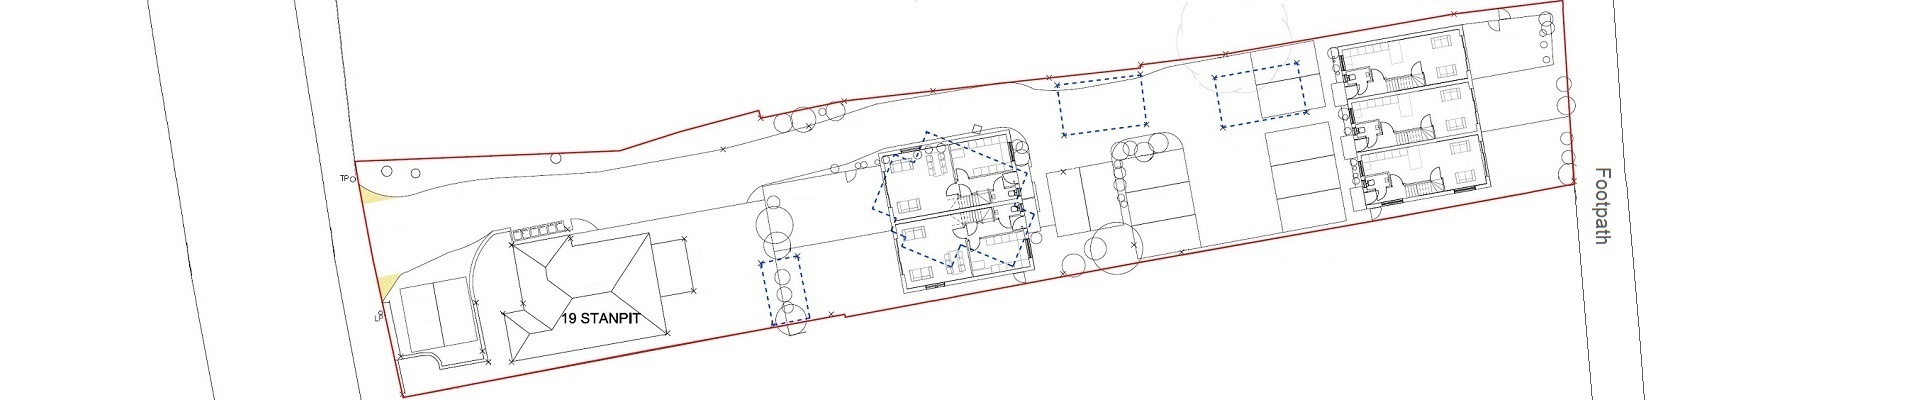 Planning Application Submitted – Stanpit, Christchurch